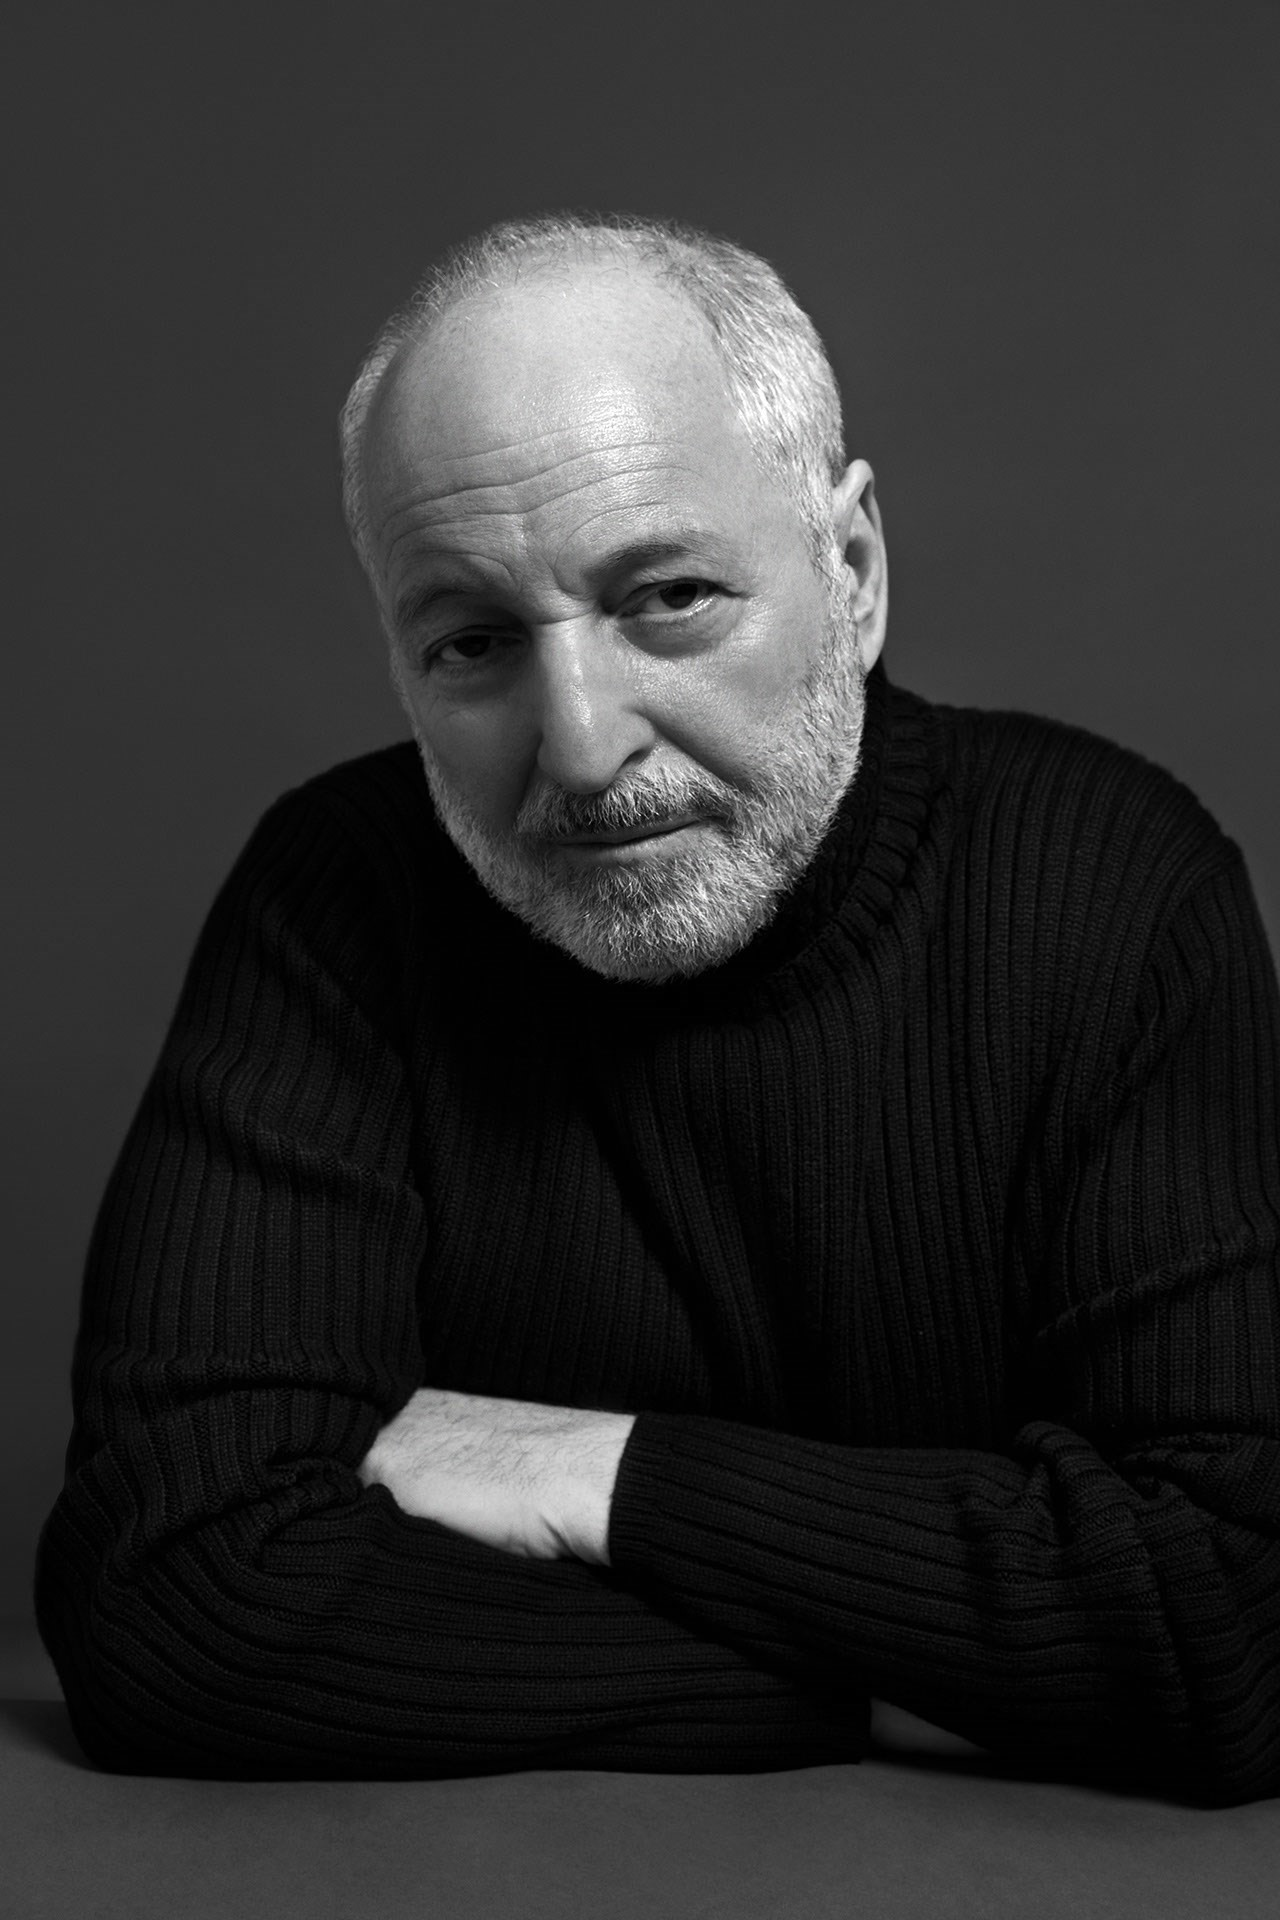 Author Photo Opt 2_Aciman, Andre (c) Chris Ferguso